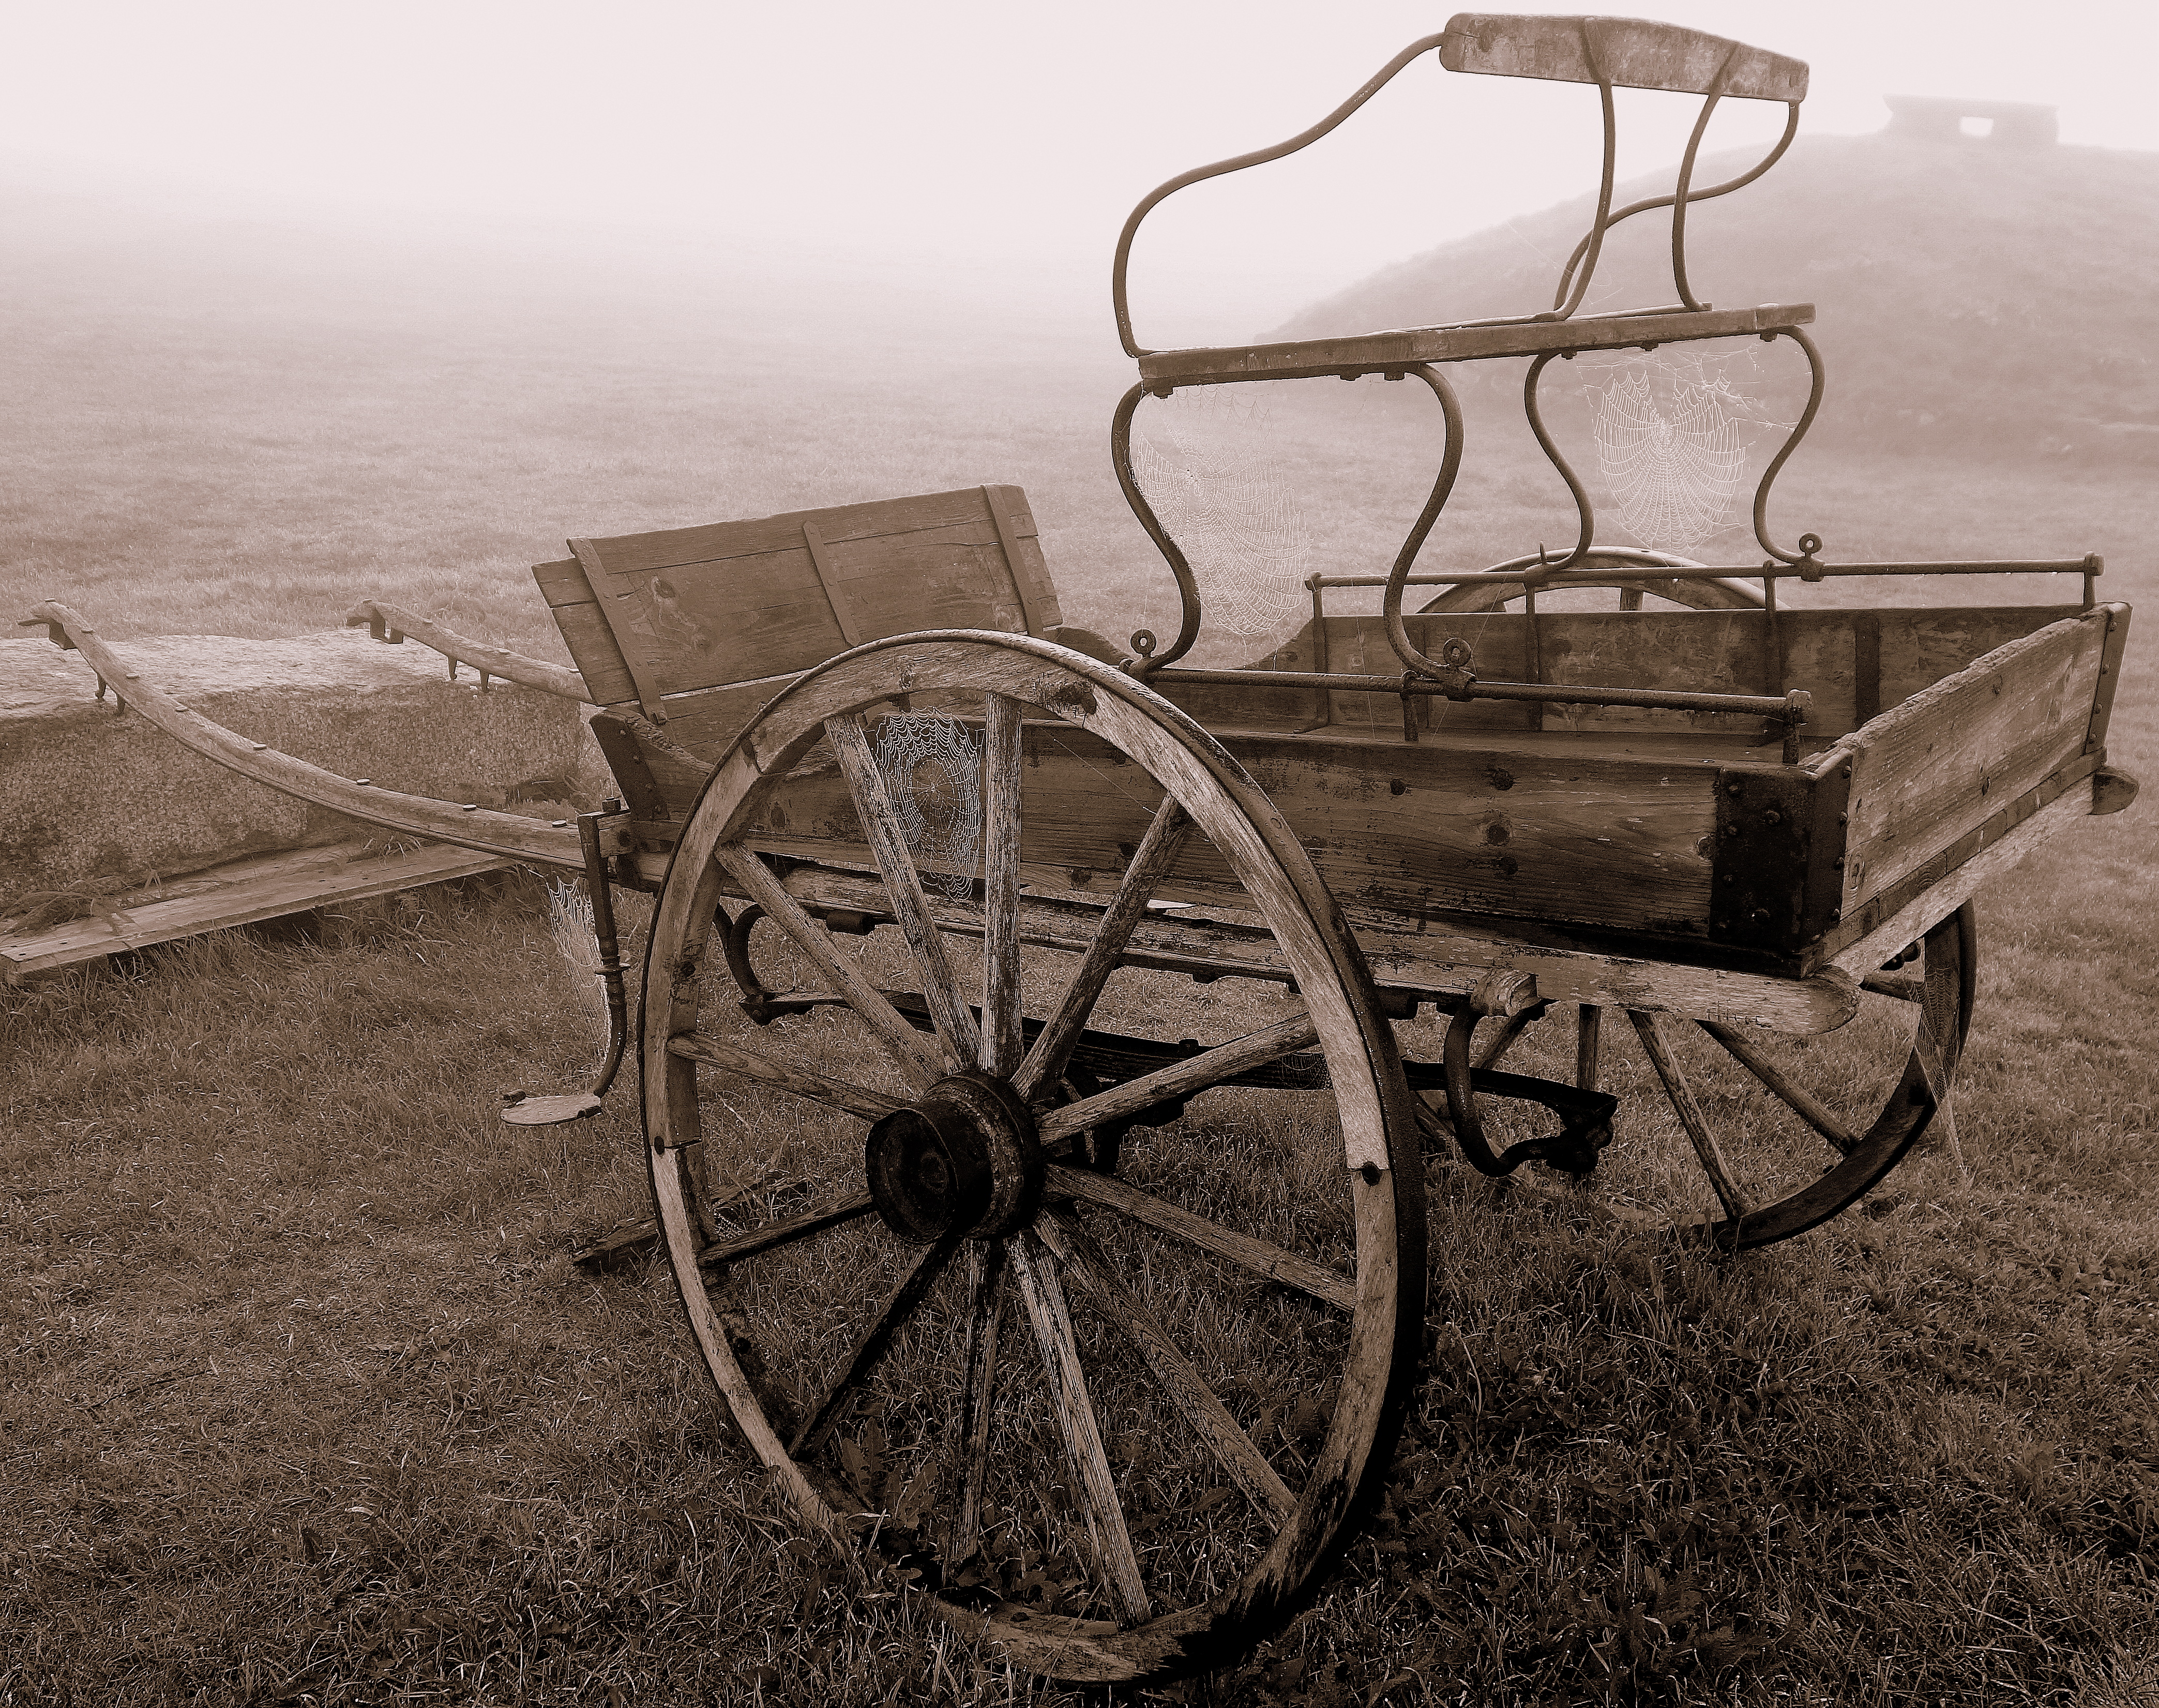 The navy yard was extremely well preserved, and we enjoyed our strolls there. This old cart looked especially attractive with the dew dipped spider webs clinging to its structure and wheels.